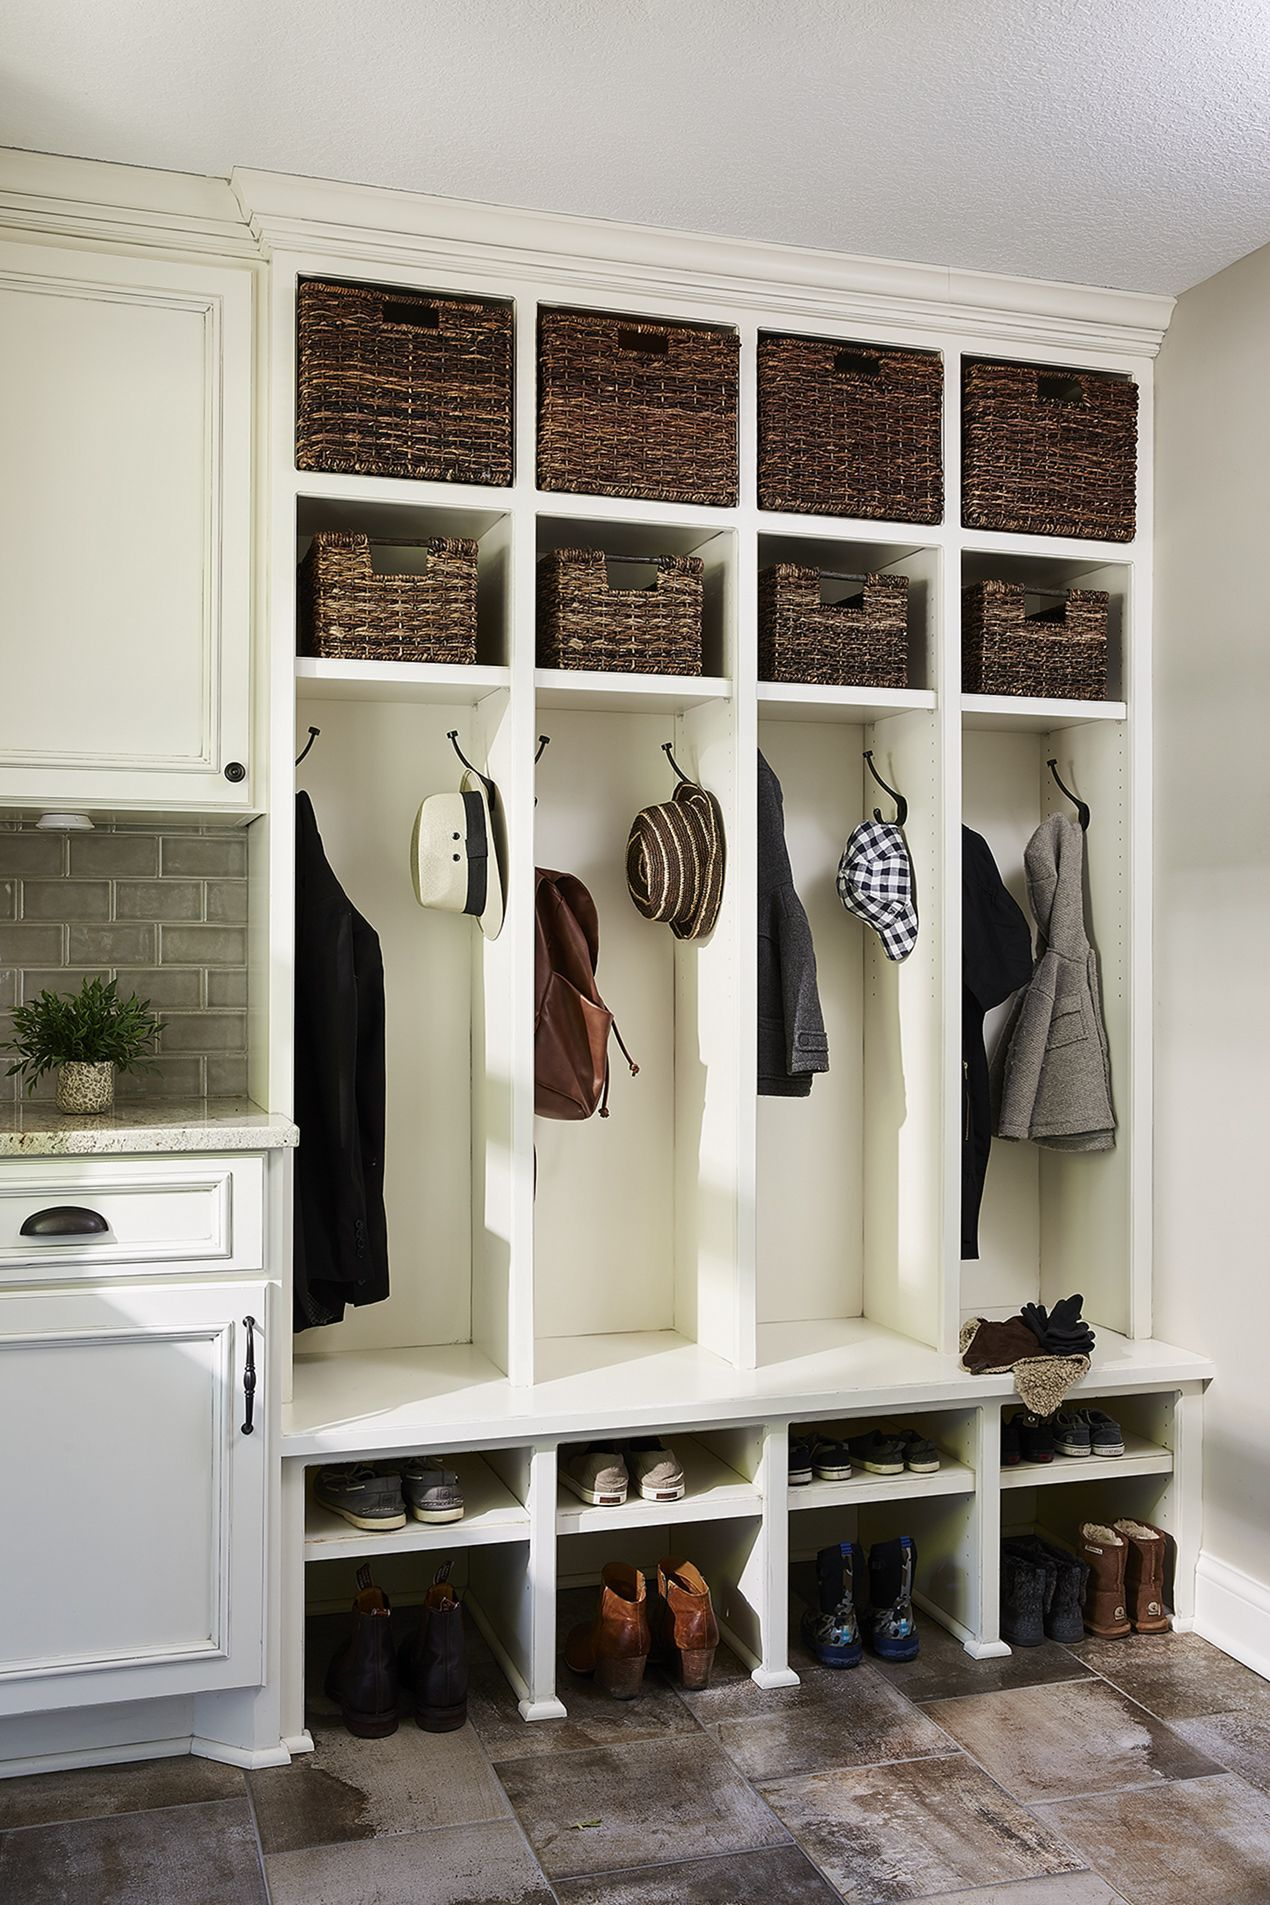 15 Incredible Mudroom Organization Ideas For Simple Storage Home Apartment Garden Mud Room Storage Mudroom Design Mudroom Remodel